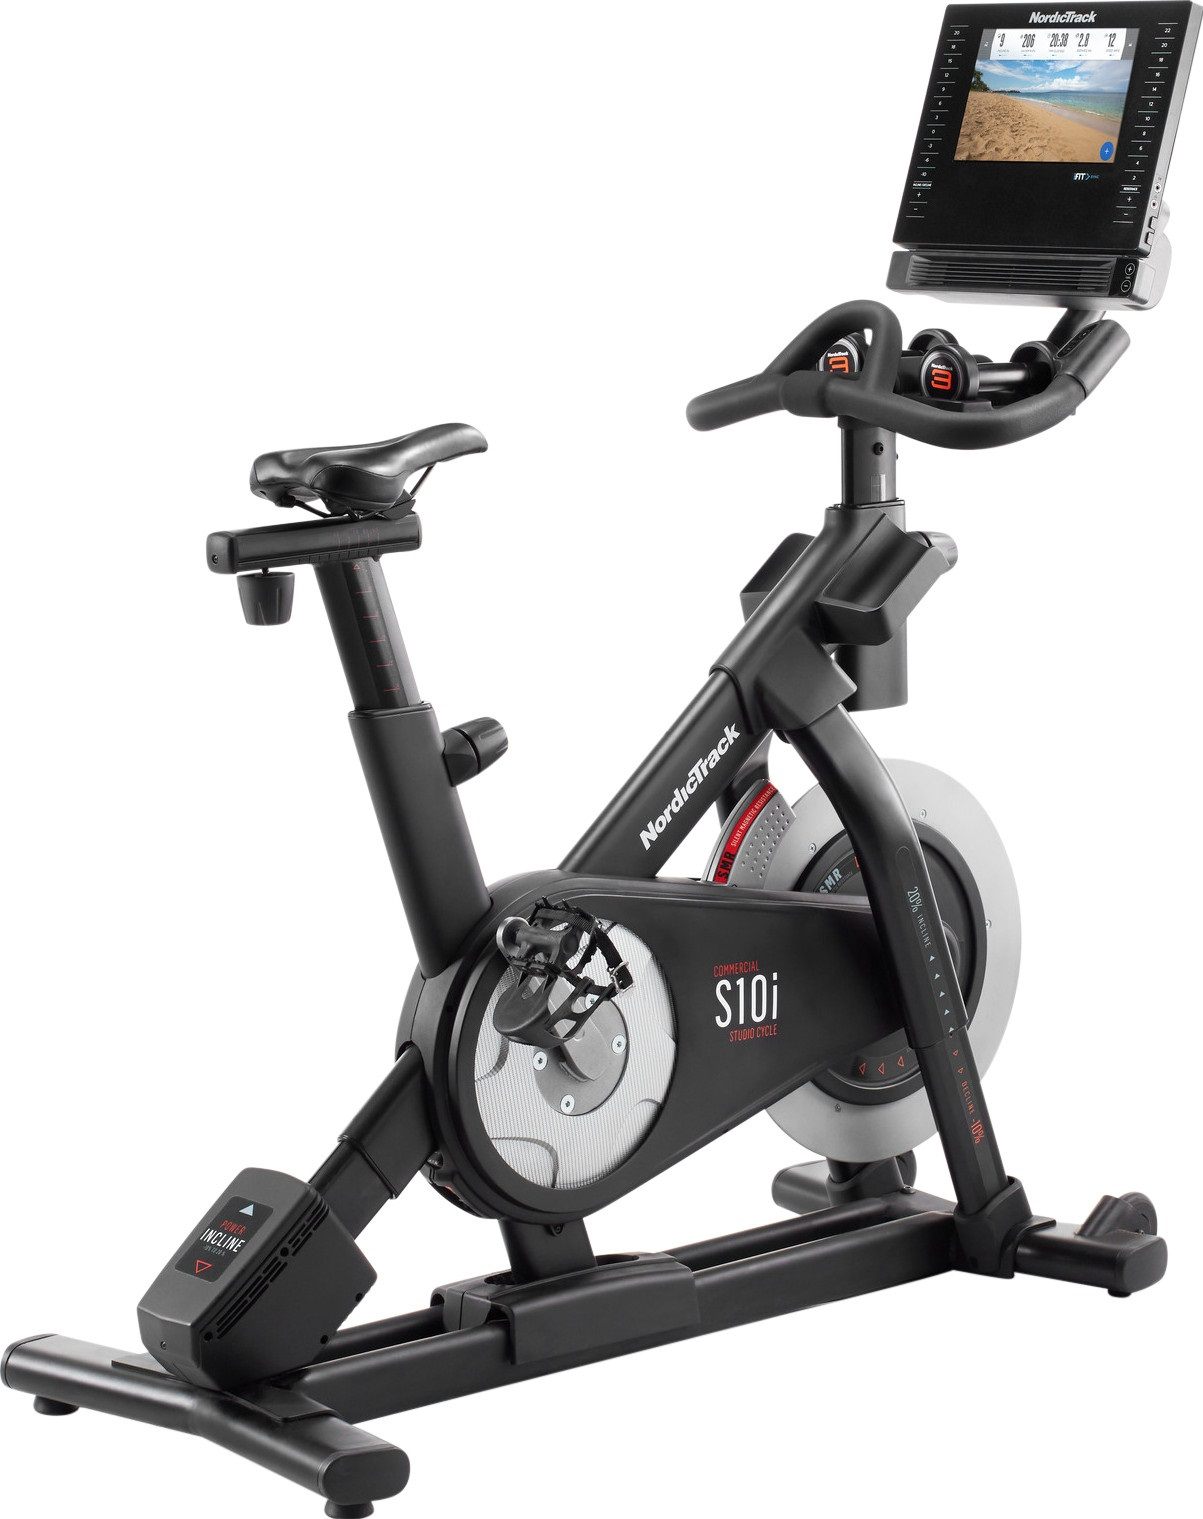 NordicTrack Commercial S10i Cycle Spinningfiets - Gratis trainingsschema